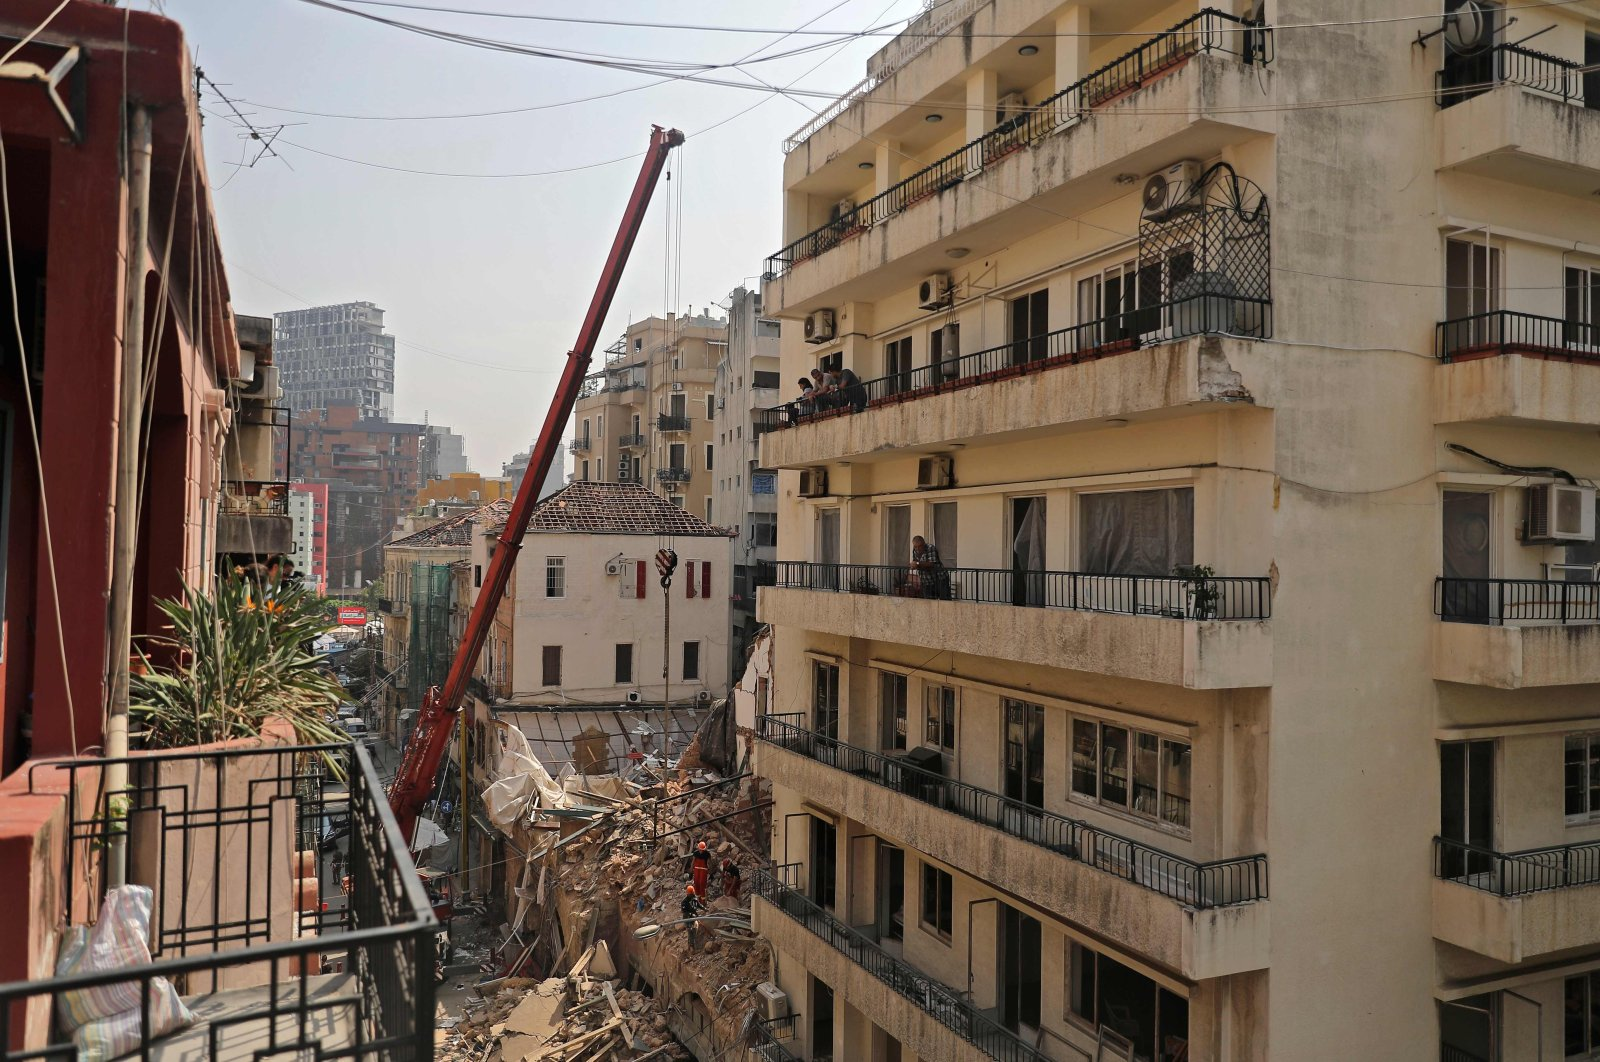 Rescue workers dig through the rubble of a badly damaged building, Beirut, Sept. 4, 2020. (AFP Photo)